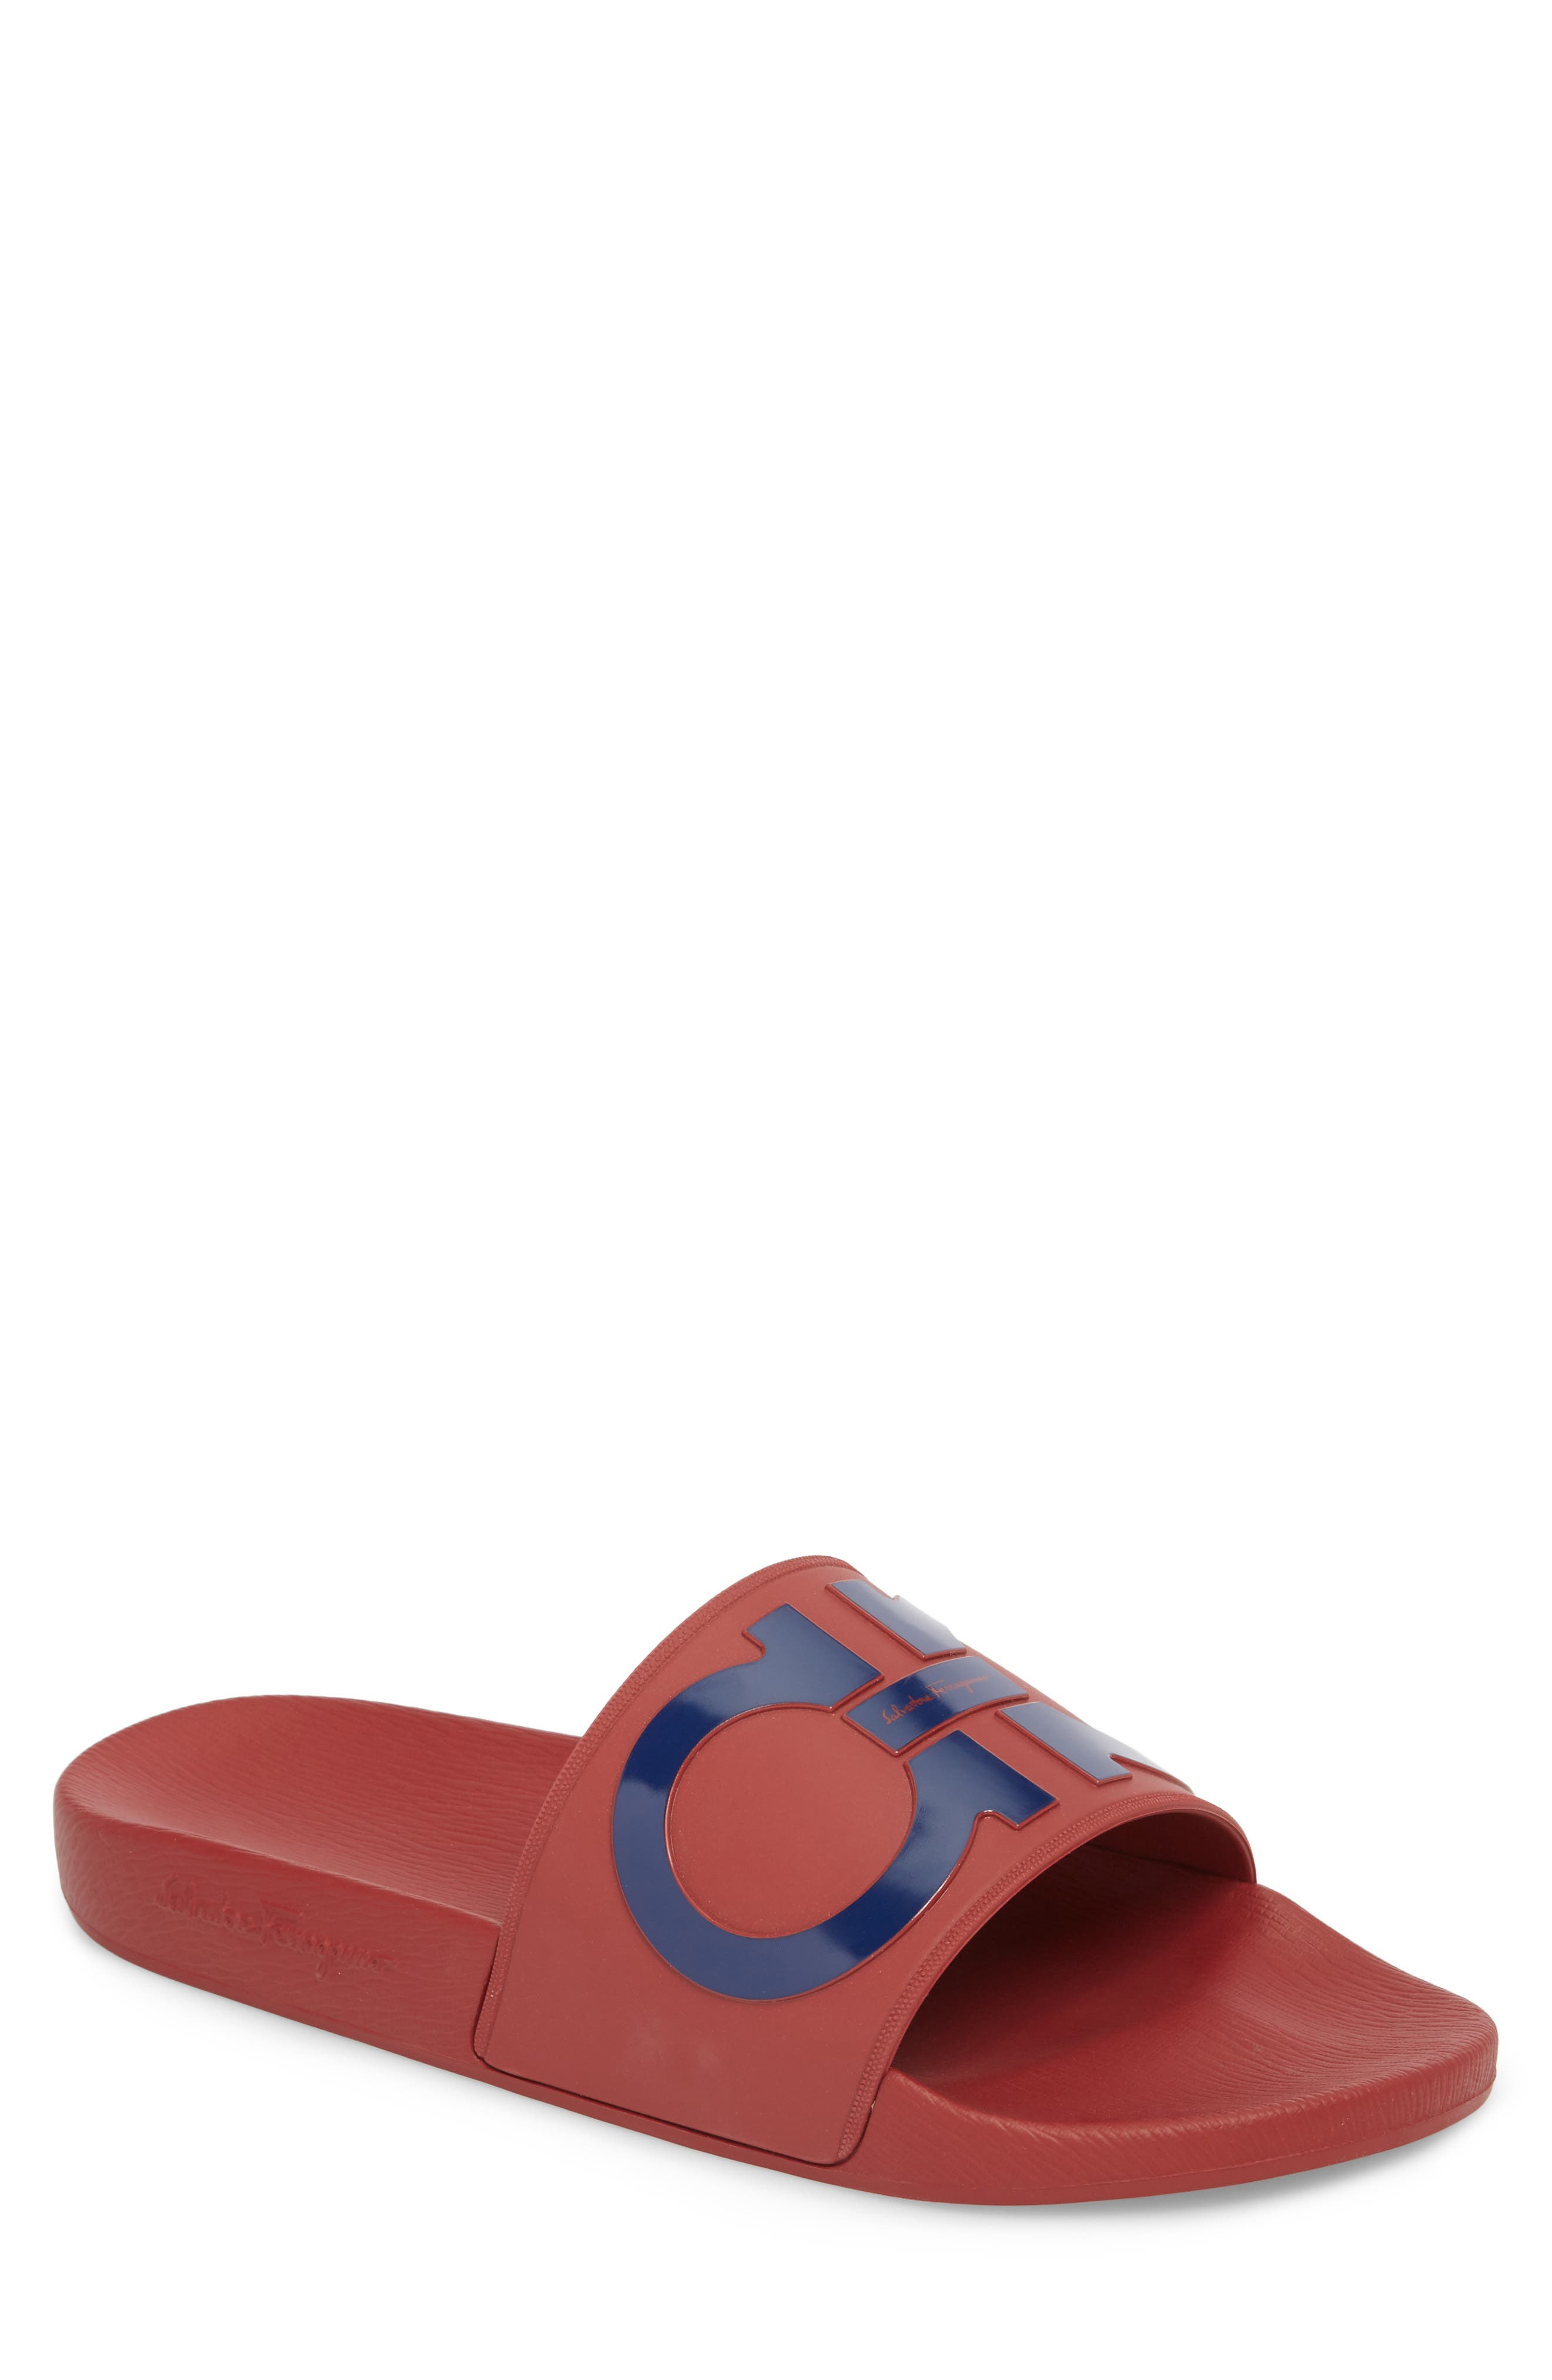 Groove Slide Sandal,                             Main thumbnail 1, color,                             Rouge